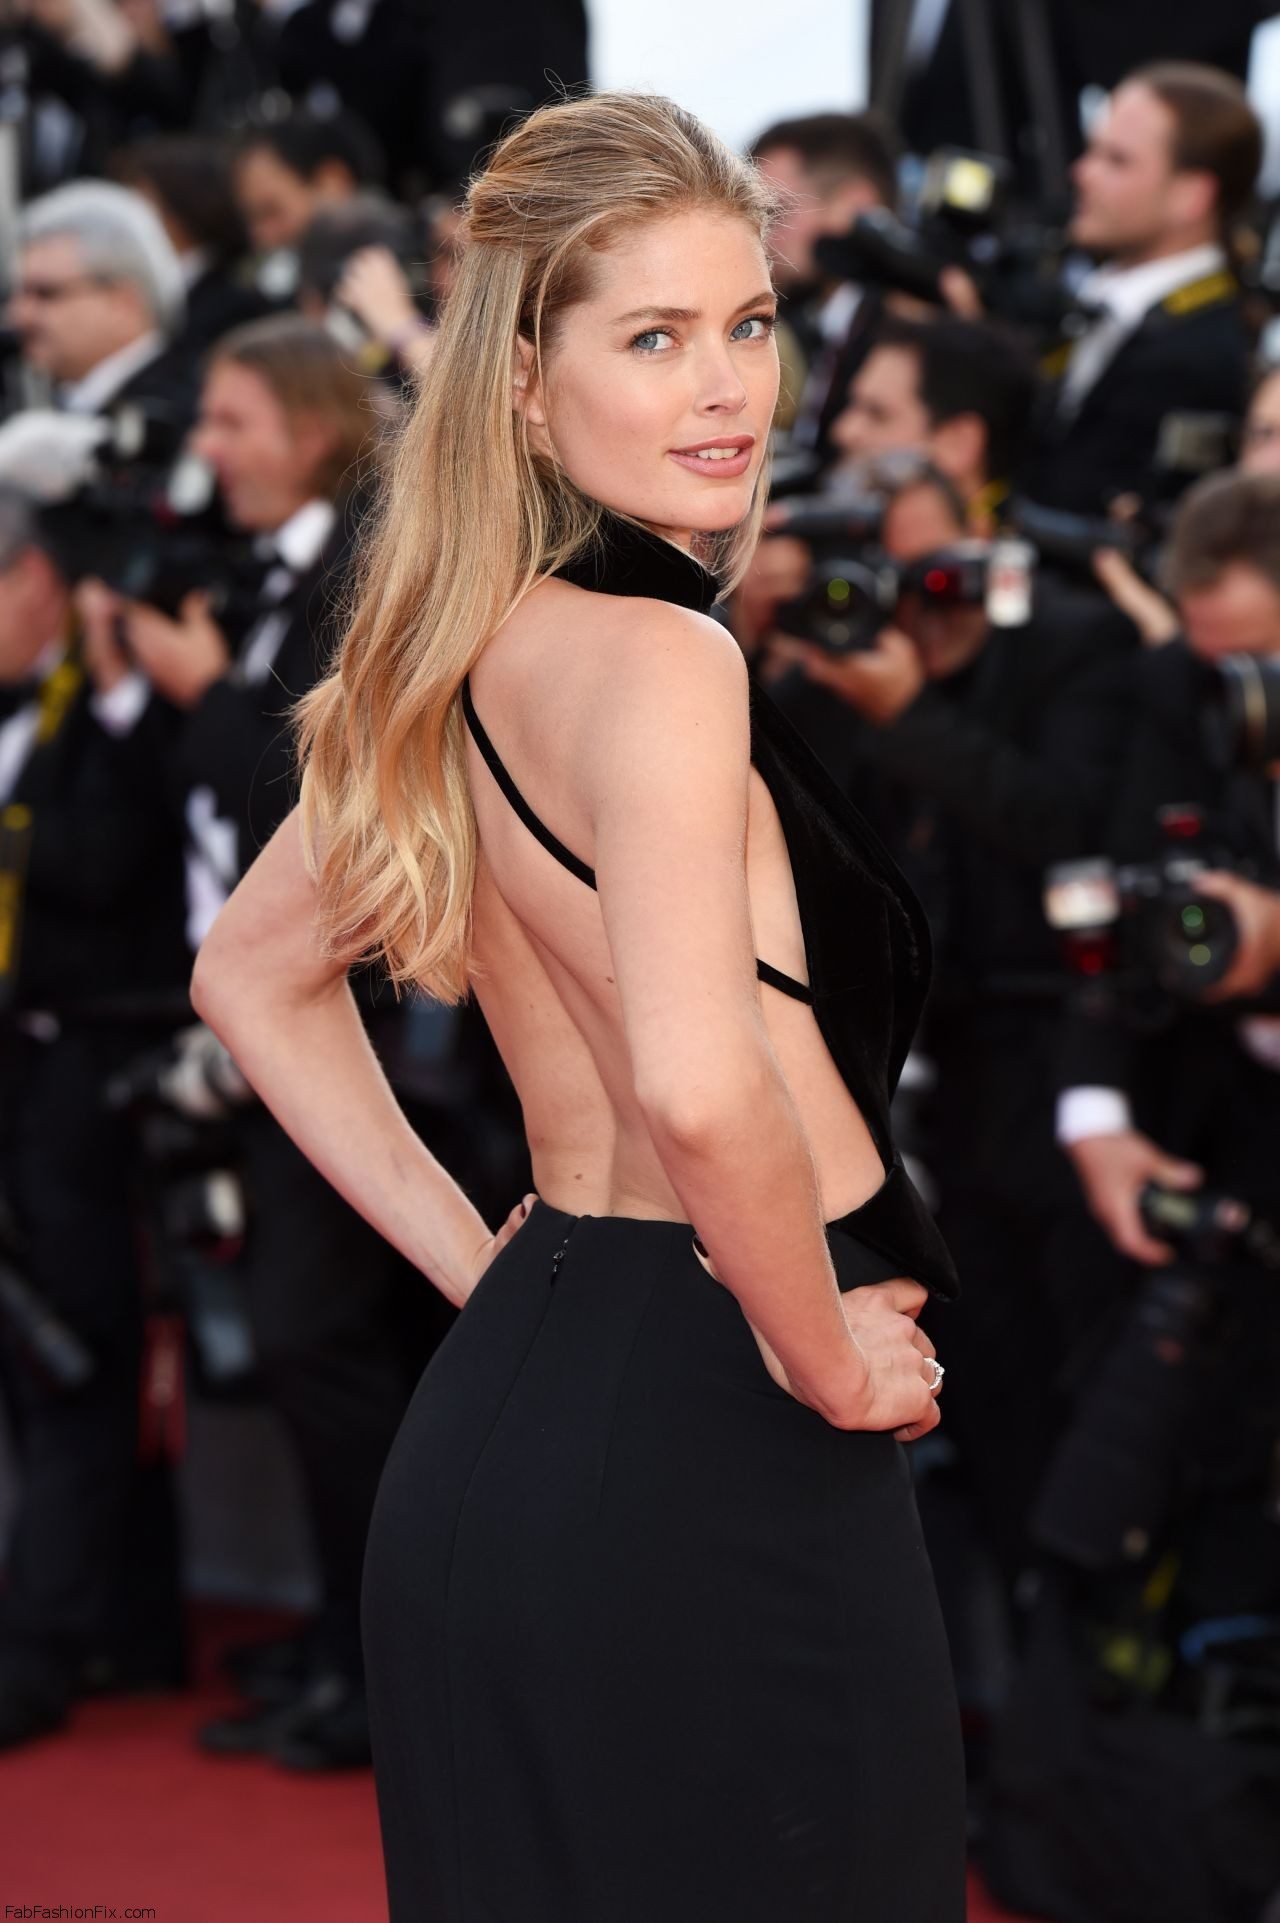 doutzen-kroes-cafe-society-premiere-and-the-opening-night-gala-2016-cannes-film-festival-4